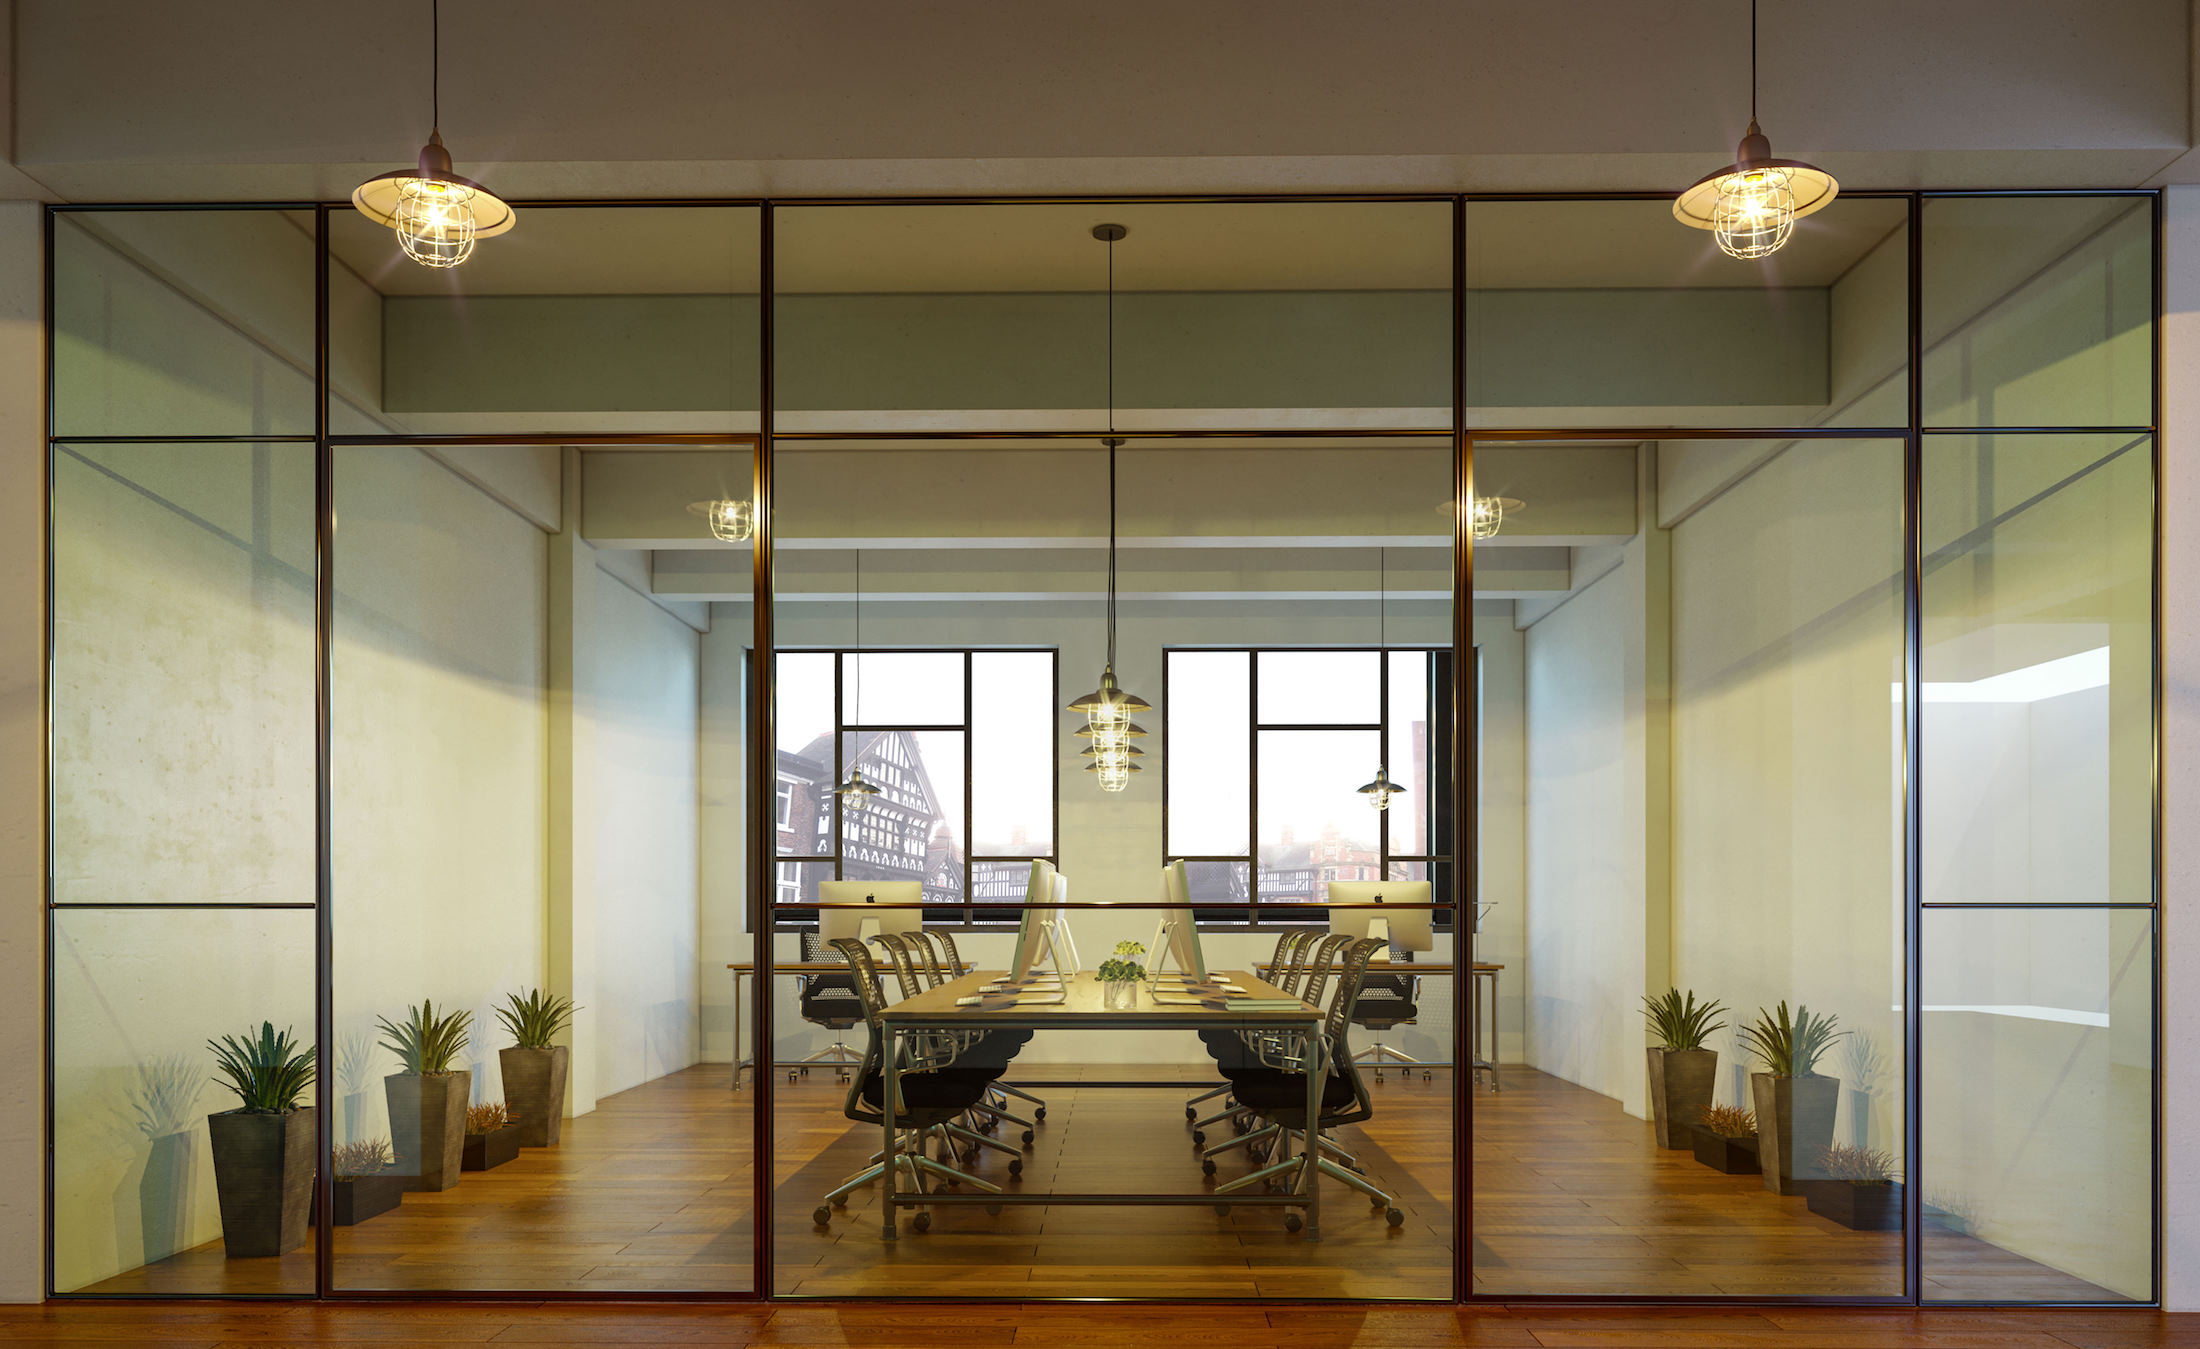 Office space with steel framed interior glass walls and doors